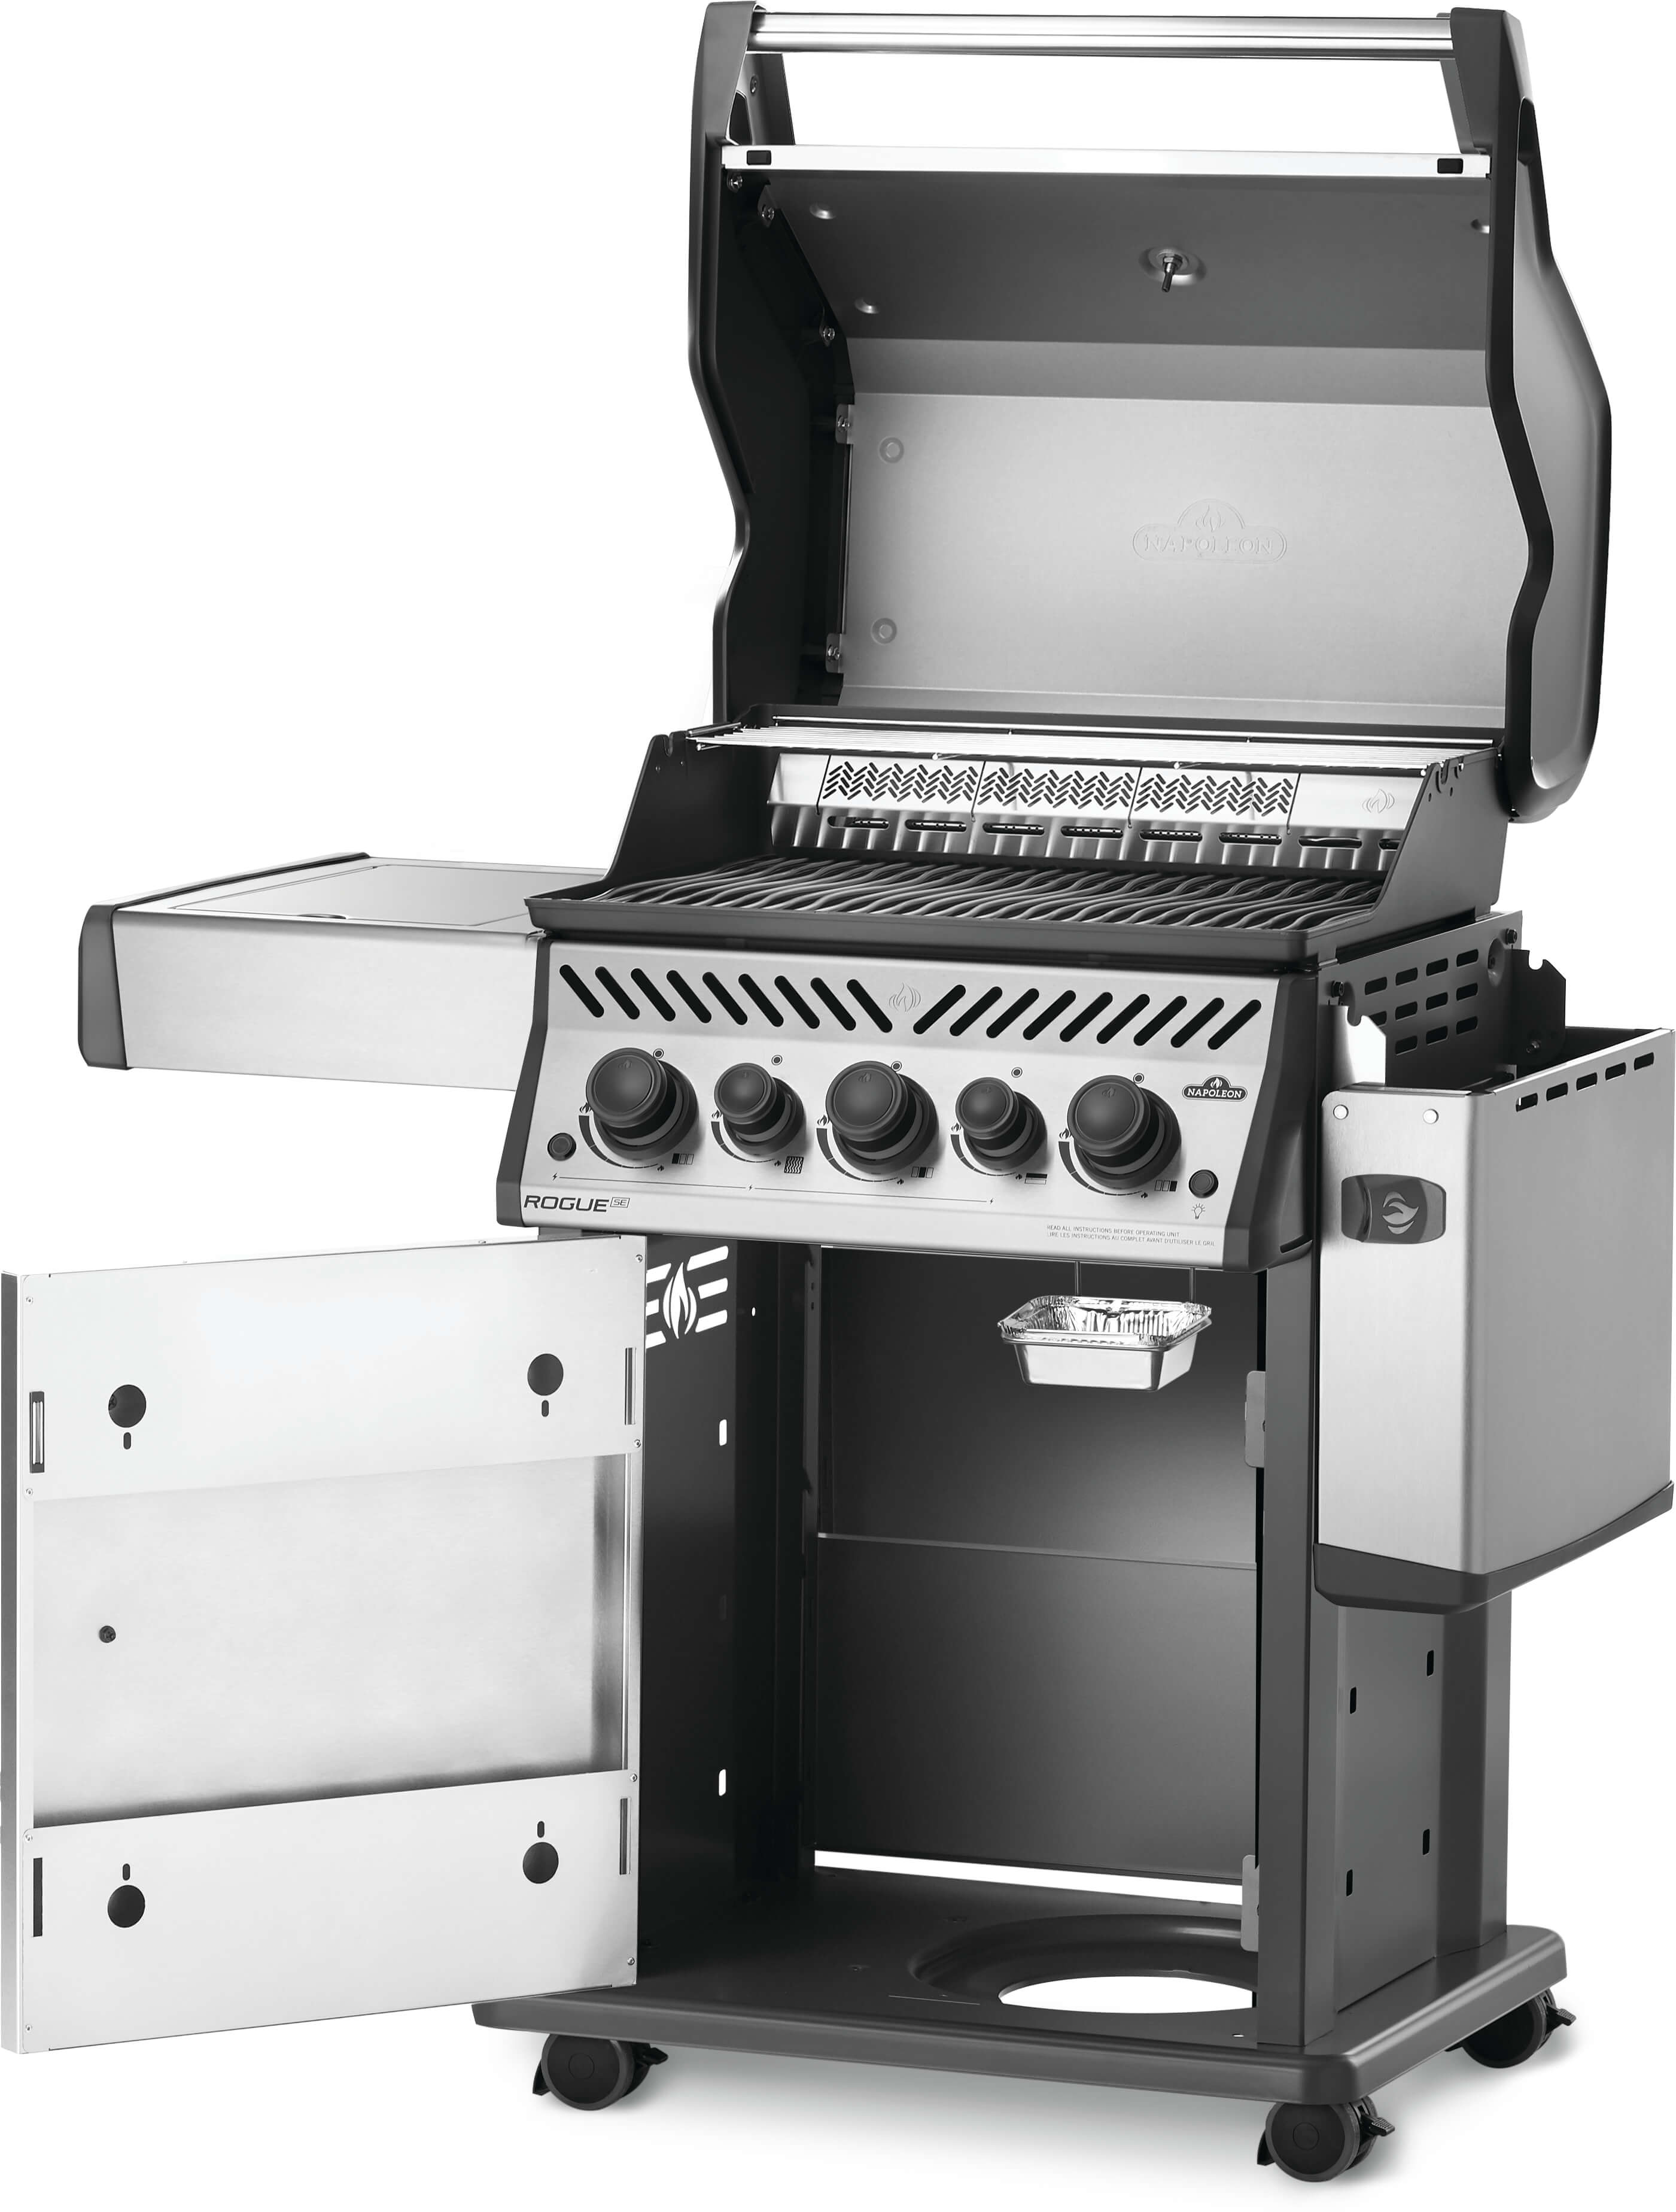 Rogue® SE 425 Natural Gas Grill with Infrared Rear and Side Burners, Stainless Steel